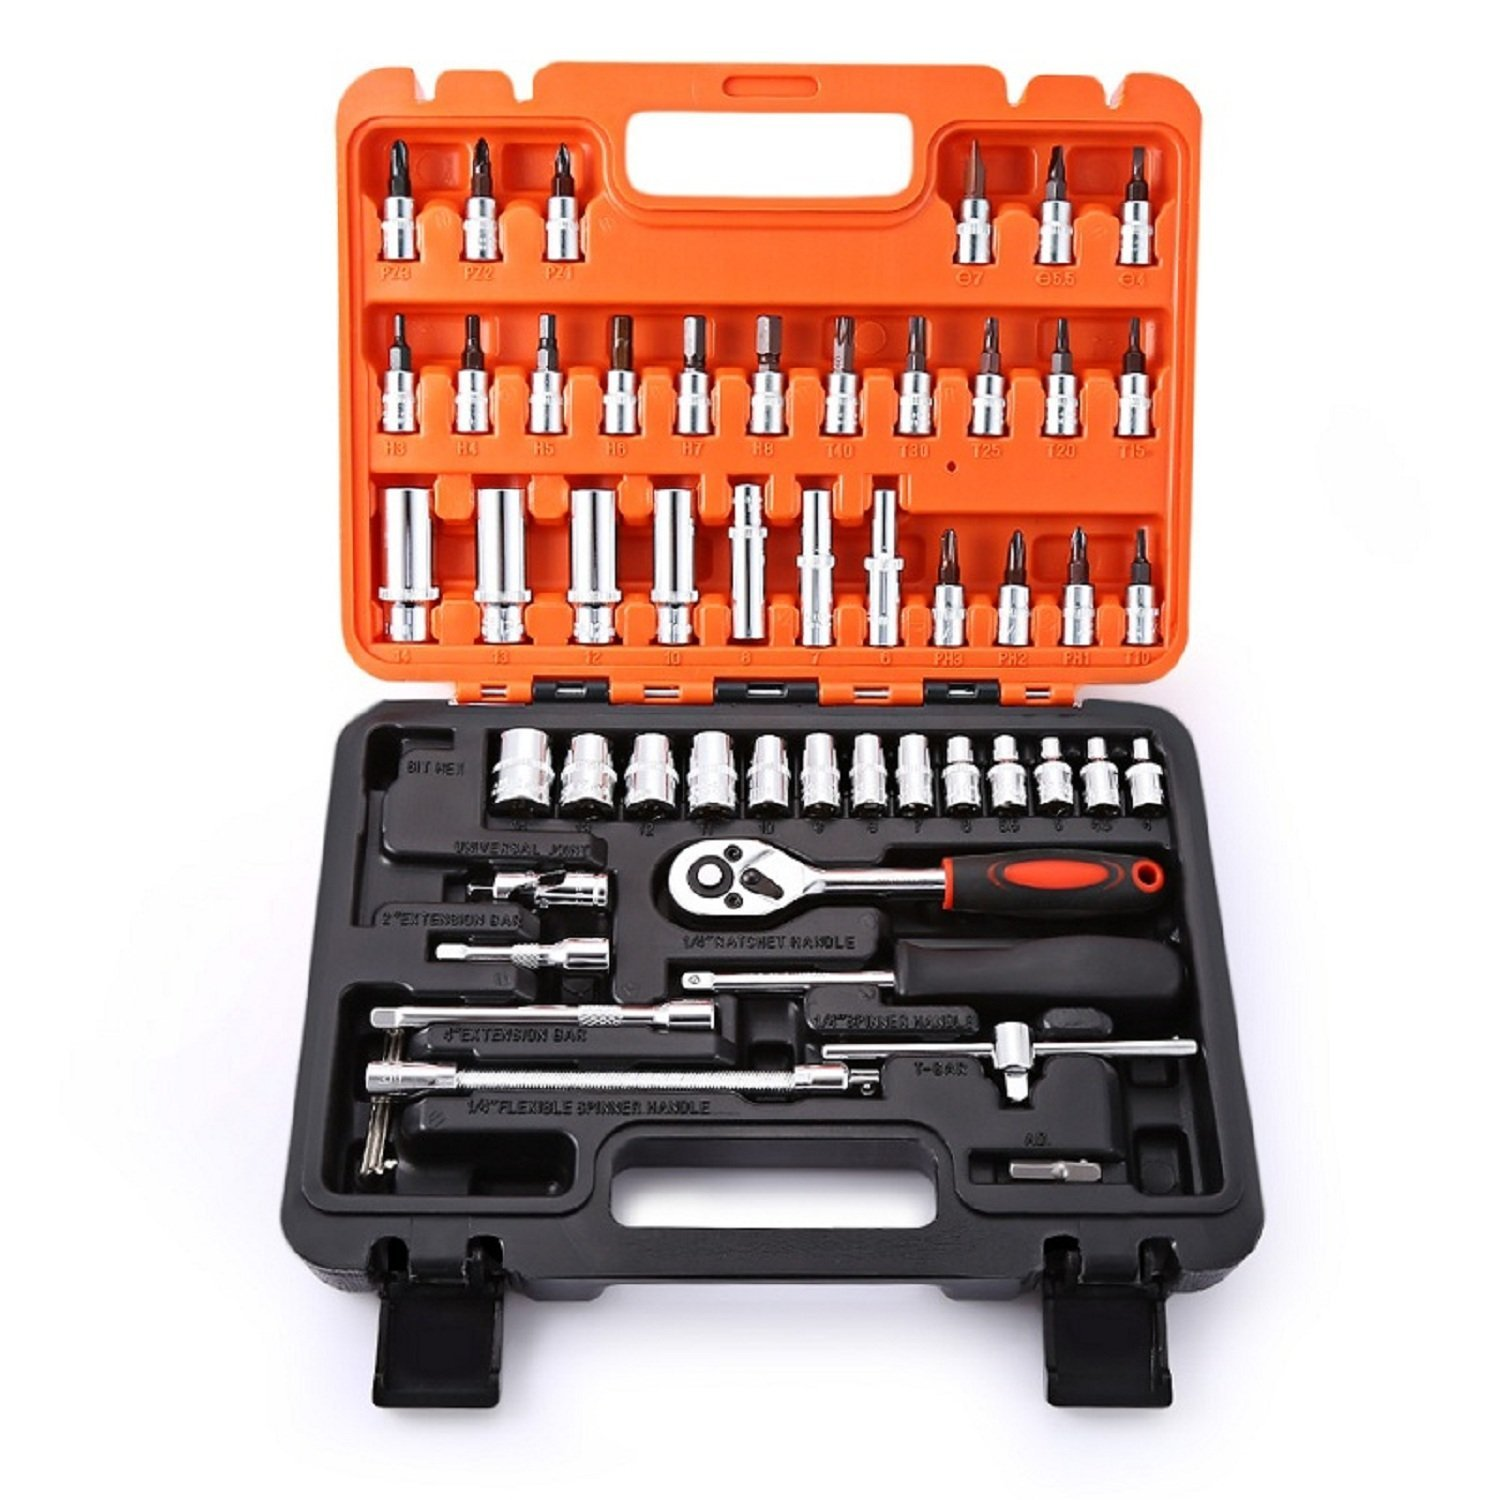 53PCS1/4-Inch Drive Socket Set Car Repair Tool Kit Ratchet Wrench Drive Socket Wrench Automobile Motorcycle Repair Hand Tool Set free shipping 9pc stock hand tool set wrench screwdrivers sockets plier conjunto de ferramenta manual motorcycle repair tool kit